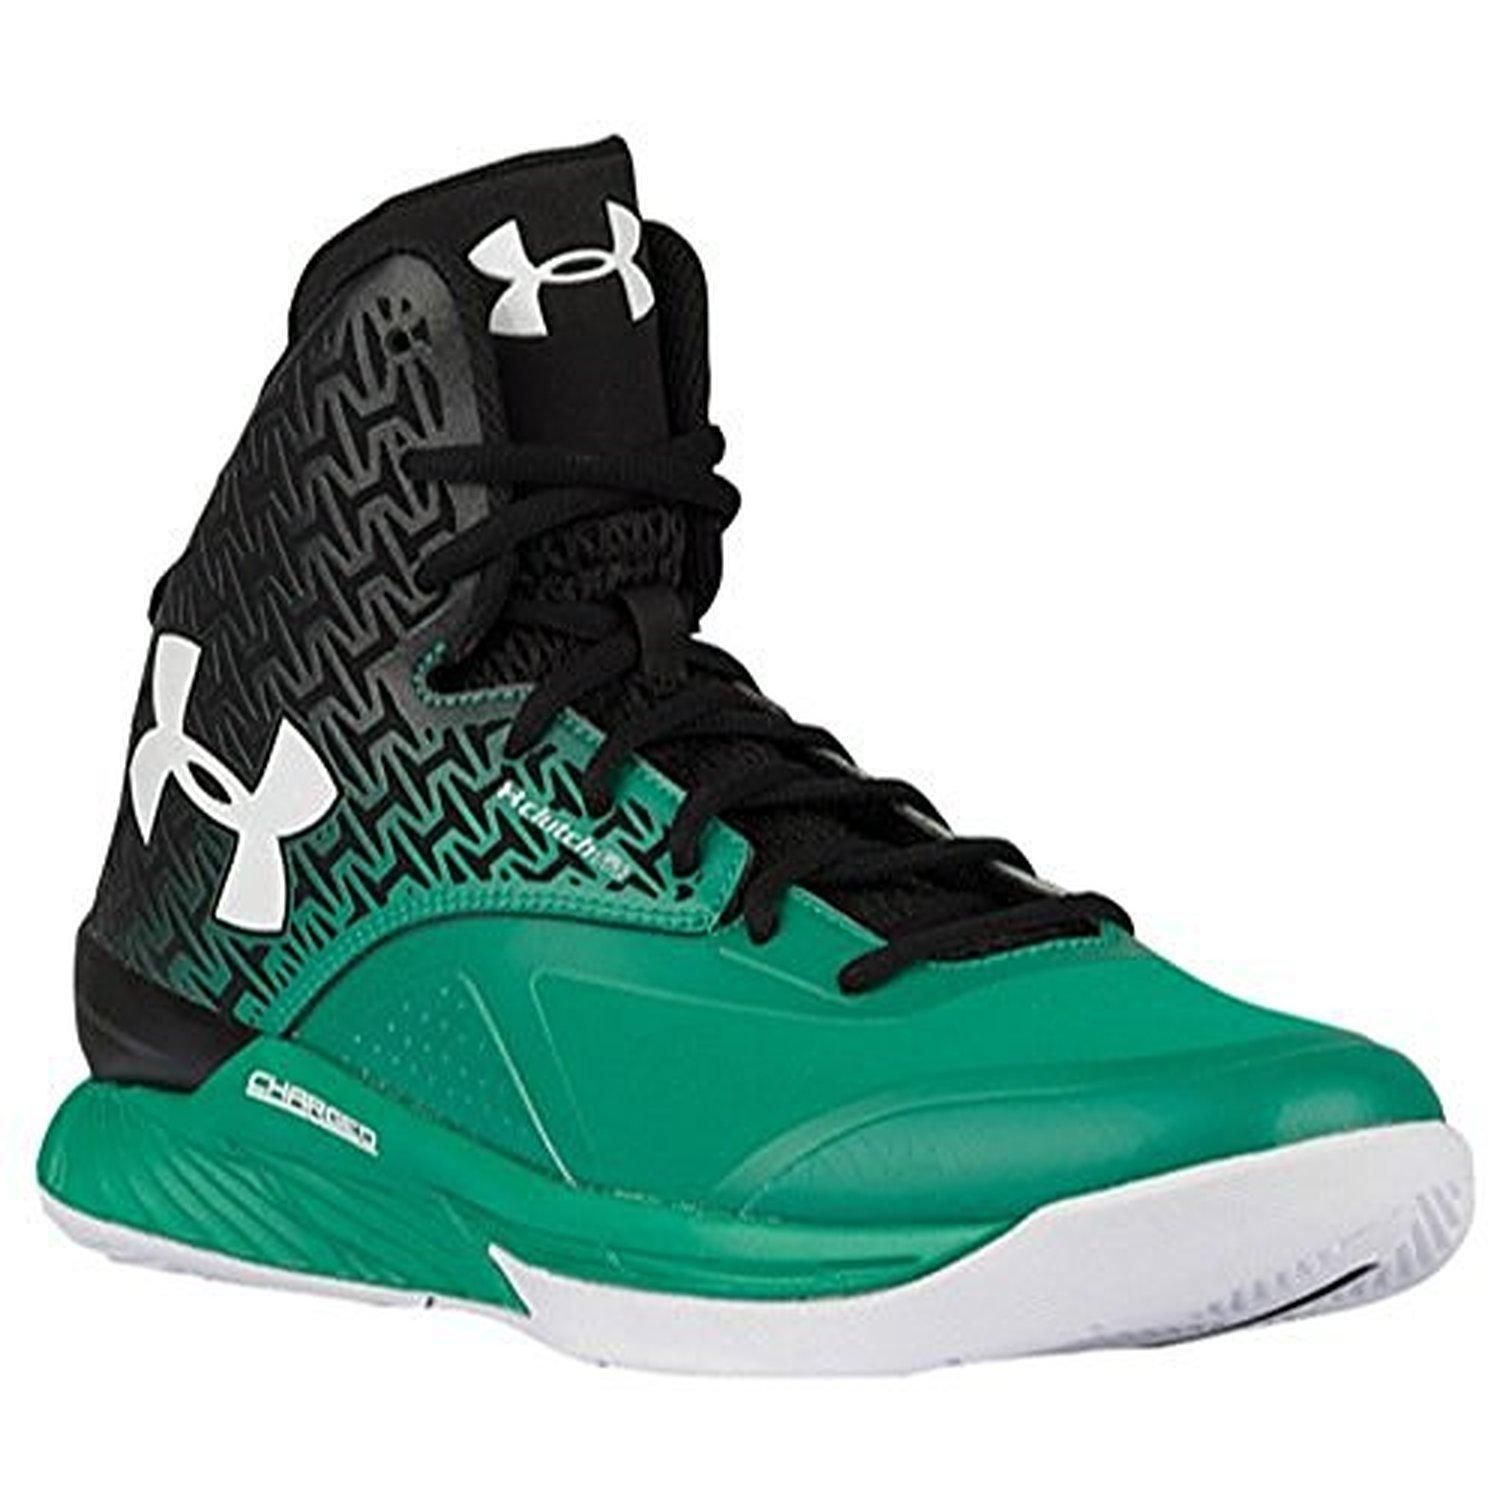 huge discount d095b 7ba50 753c2 99d0d  coupon canada under armour ua clutchfit prodigy mens size 8  basketball shoes brought to you by